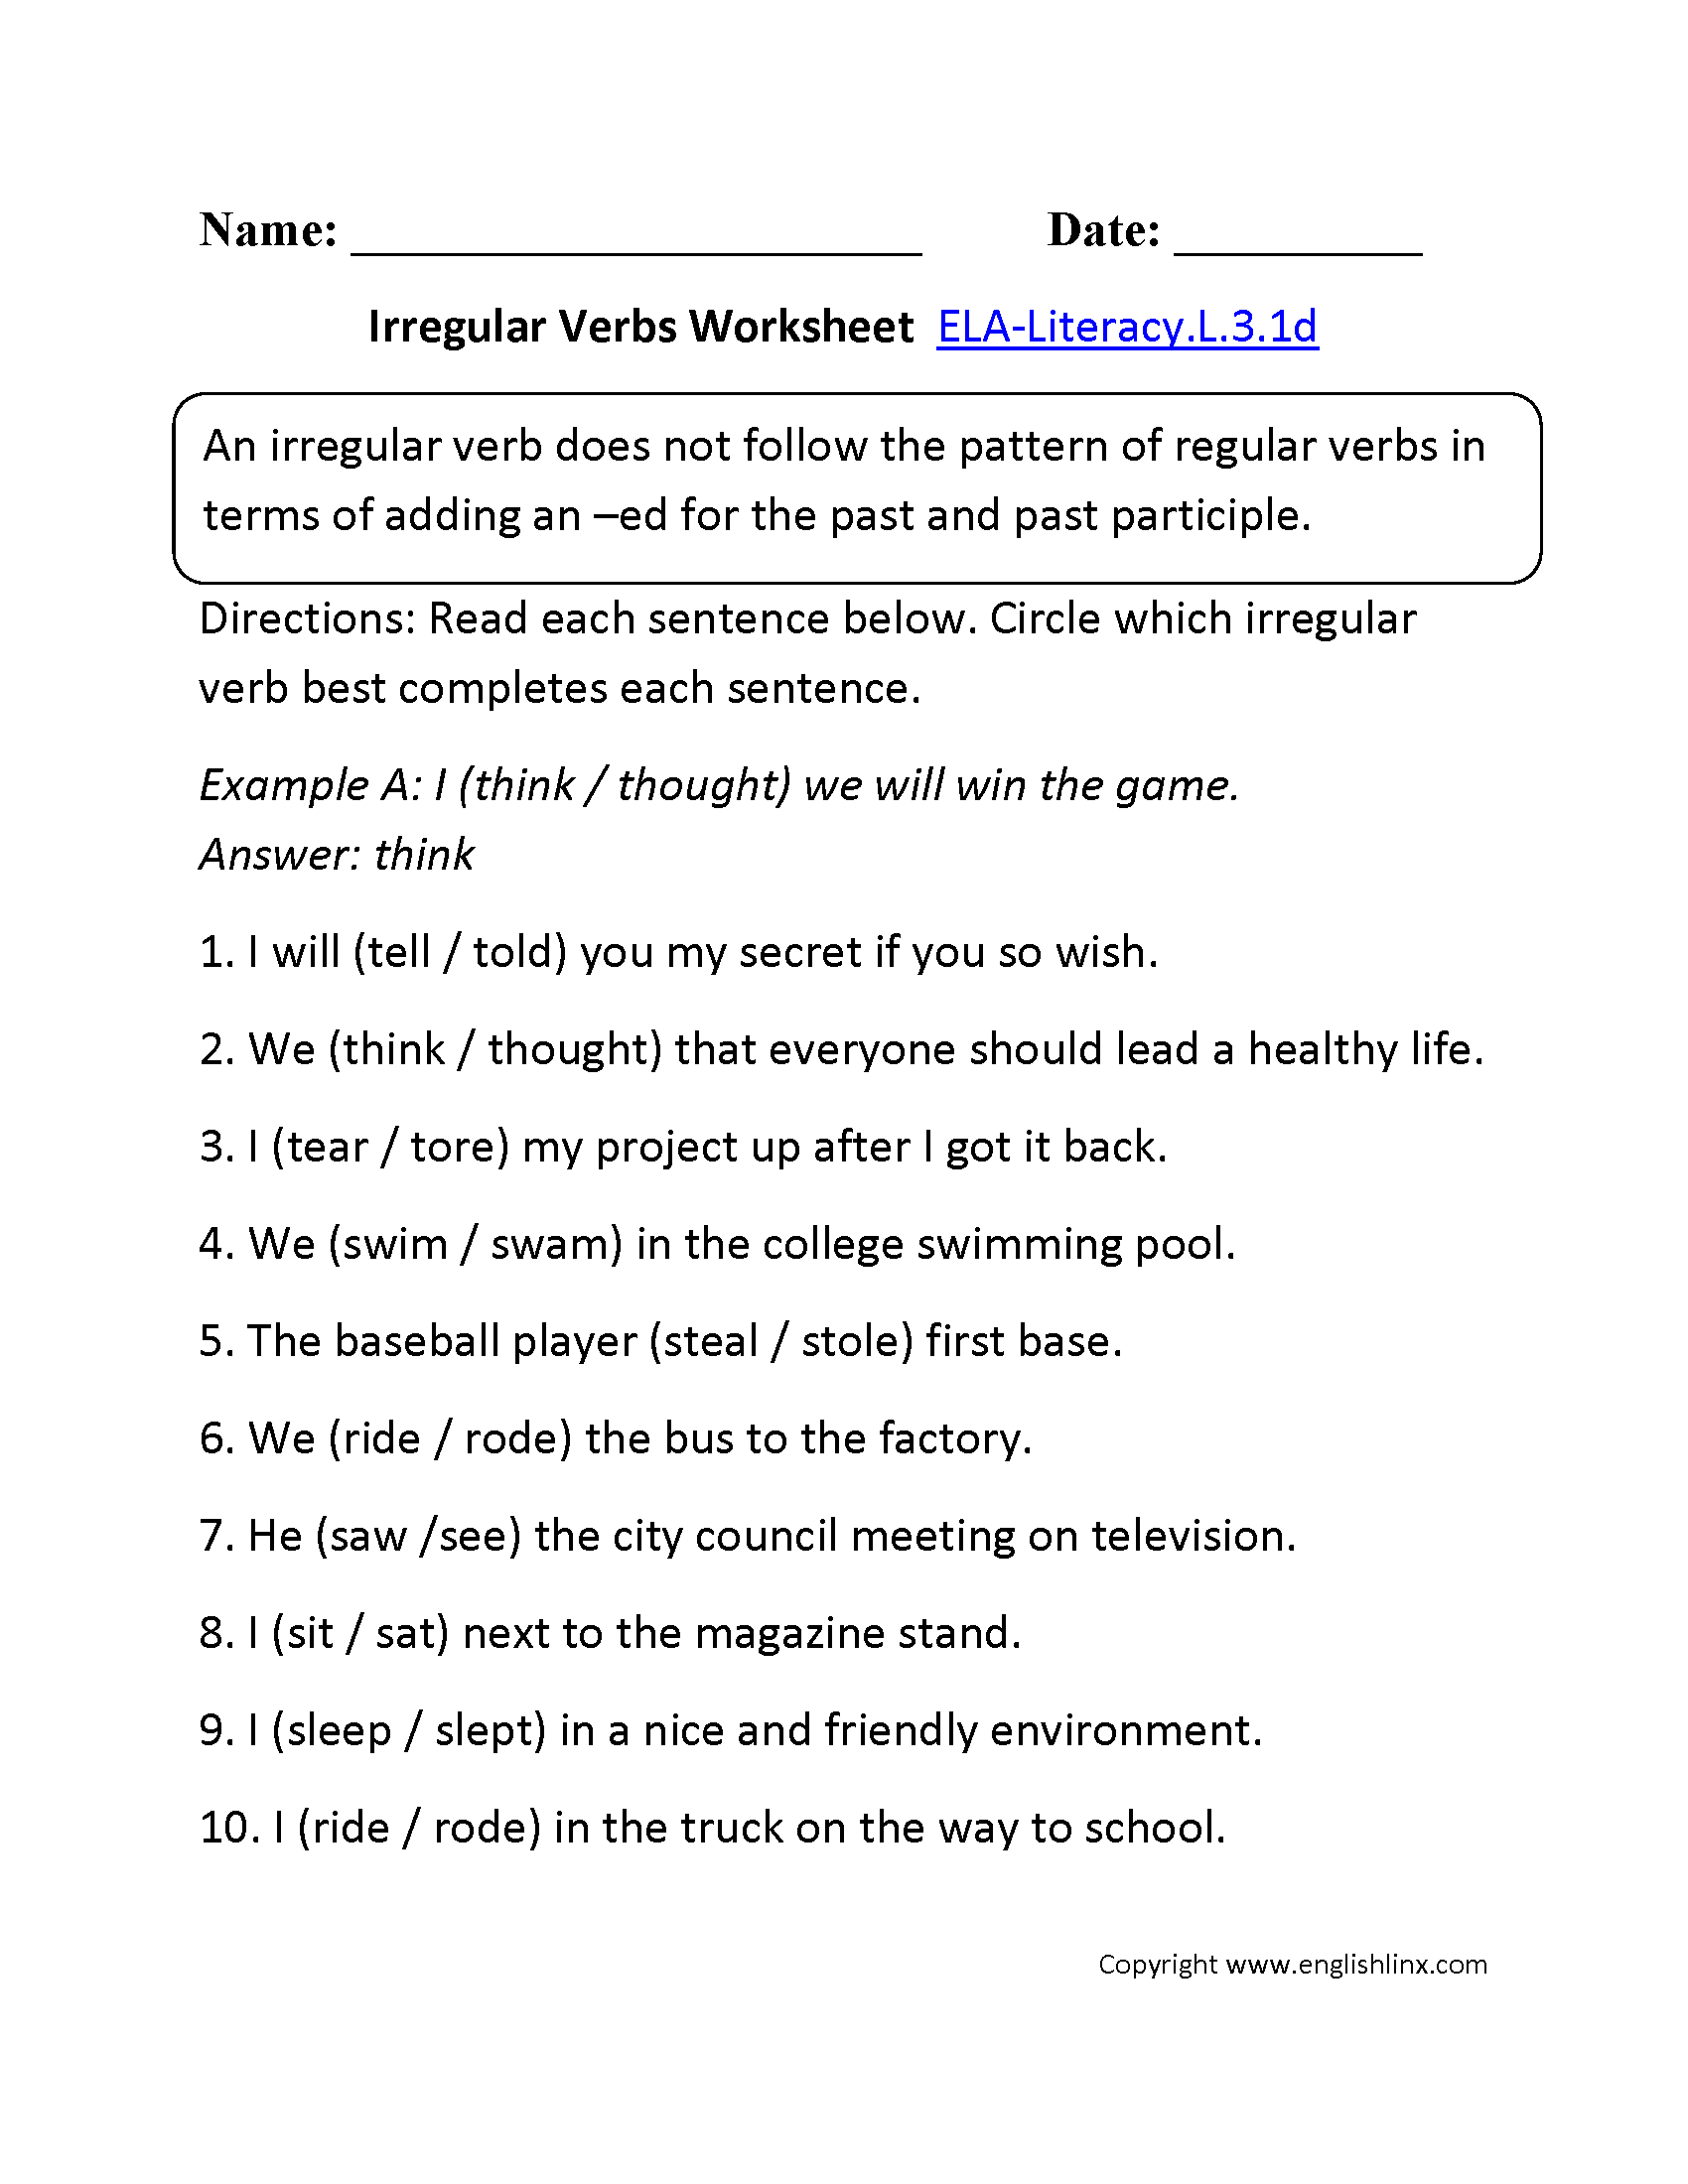 Worksheets Irregular Verbs Worksheet irregular verbs worksheet 1 ela literacy l 3 1d language english worksheets that are aligned to the grade common core standards for language